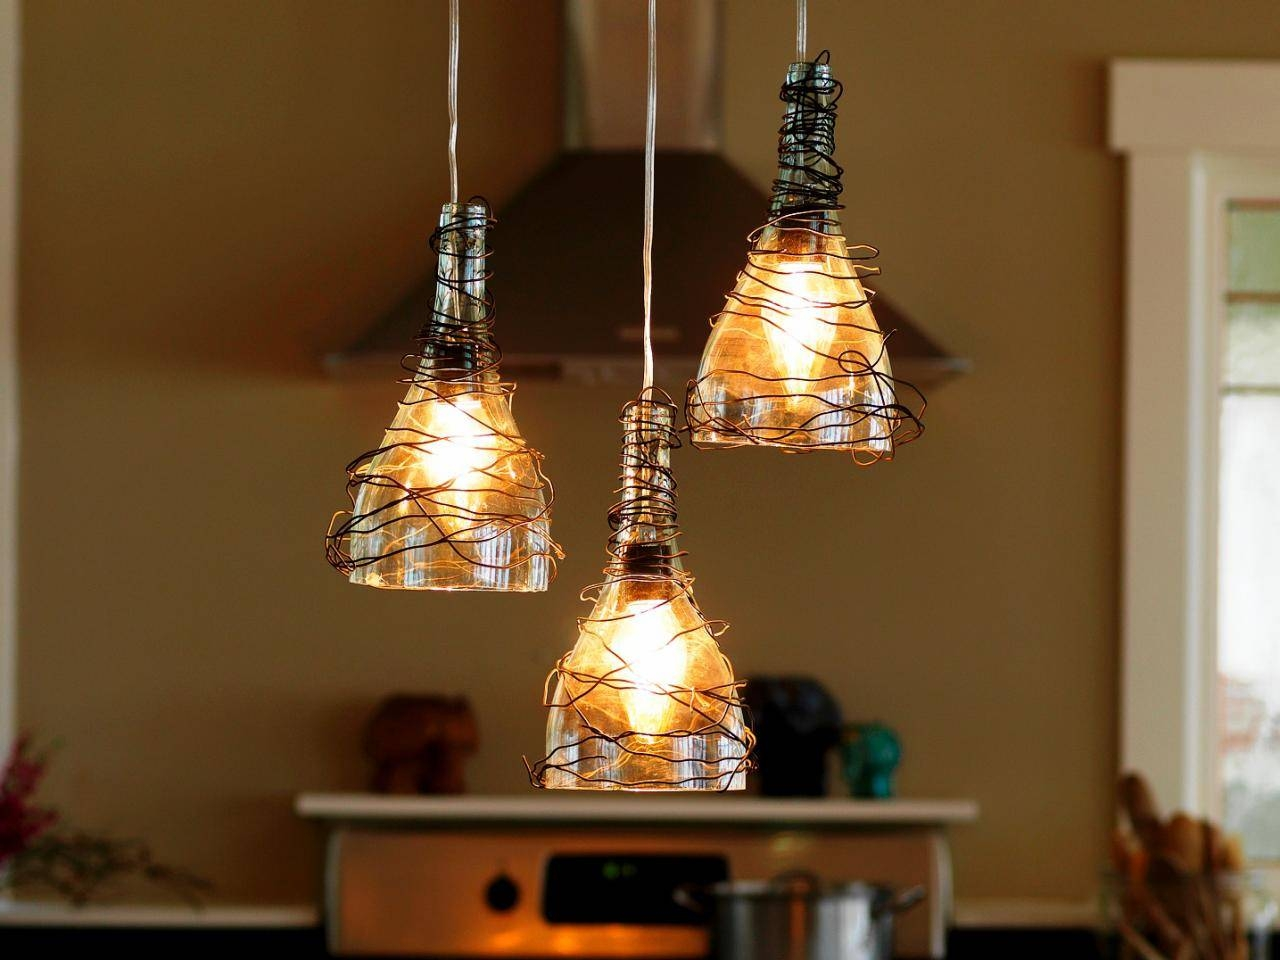 Upcycle Wine Bottle Into Pendant Light Fixtures | How-Tos | Diy intended for Make Your Own Pendant Lights (Image 15 of 15)